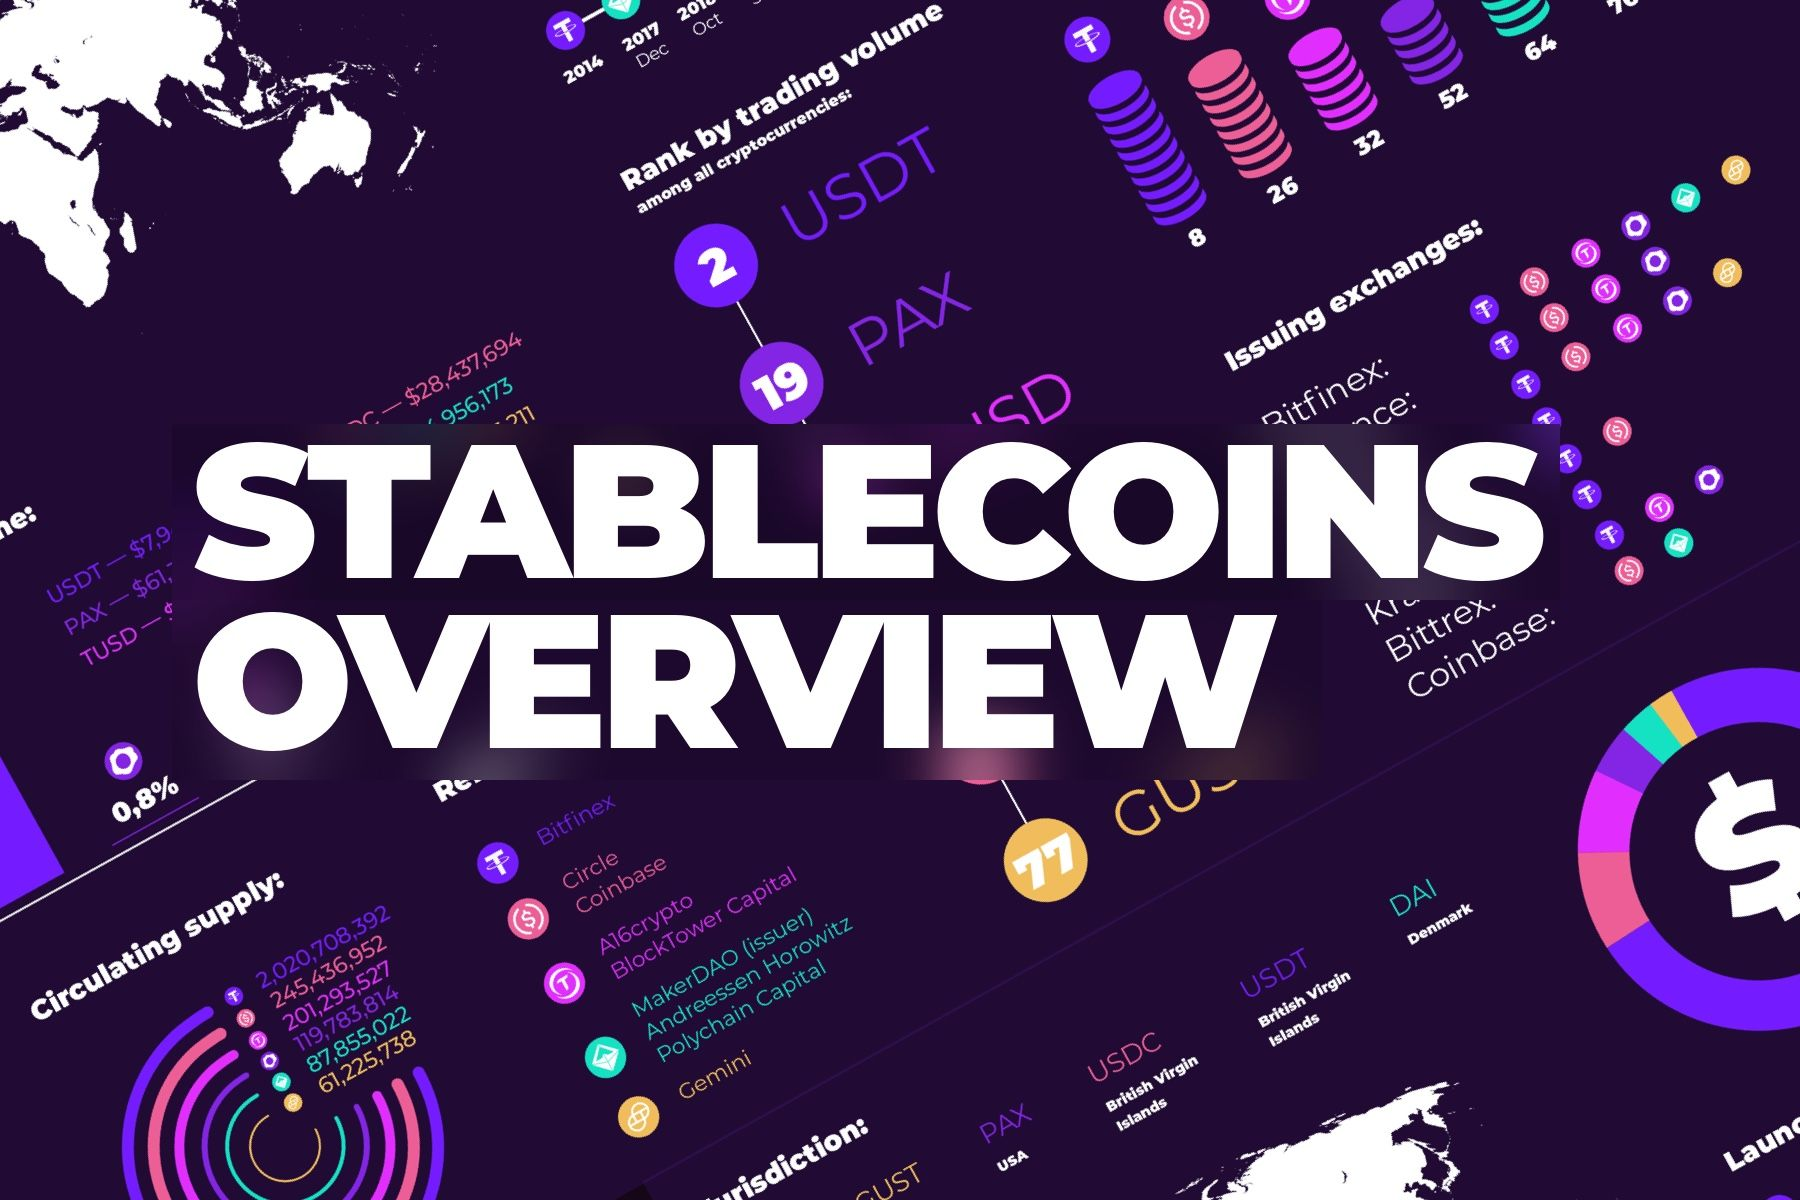 Stablecoins: what they are, market capitalisation, ranking, exchanges, issuers